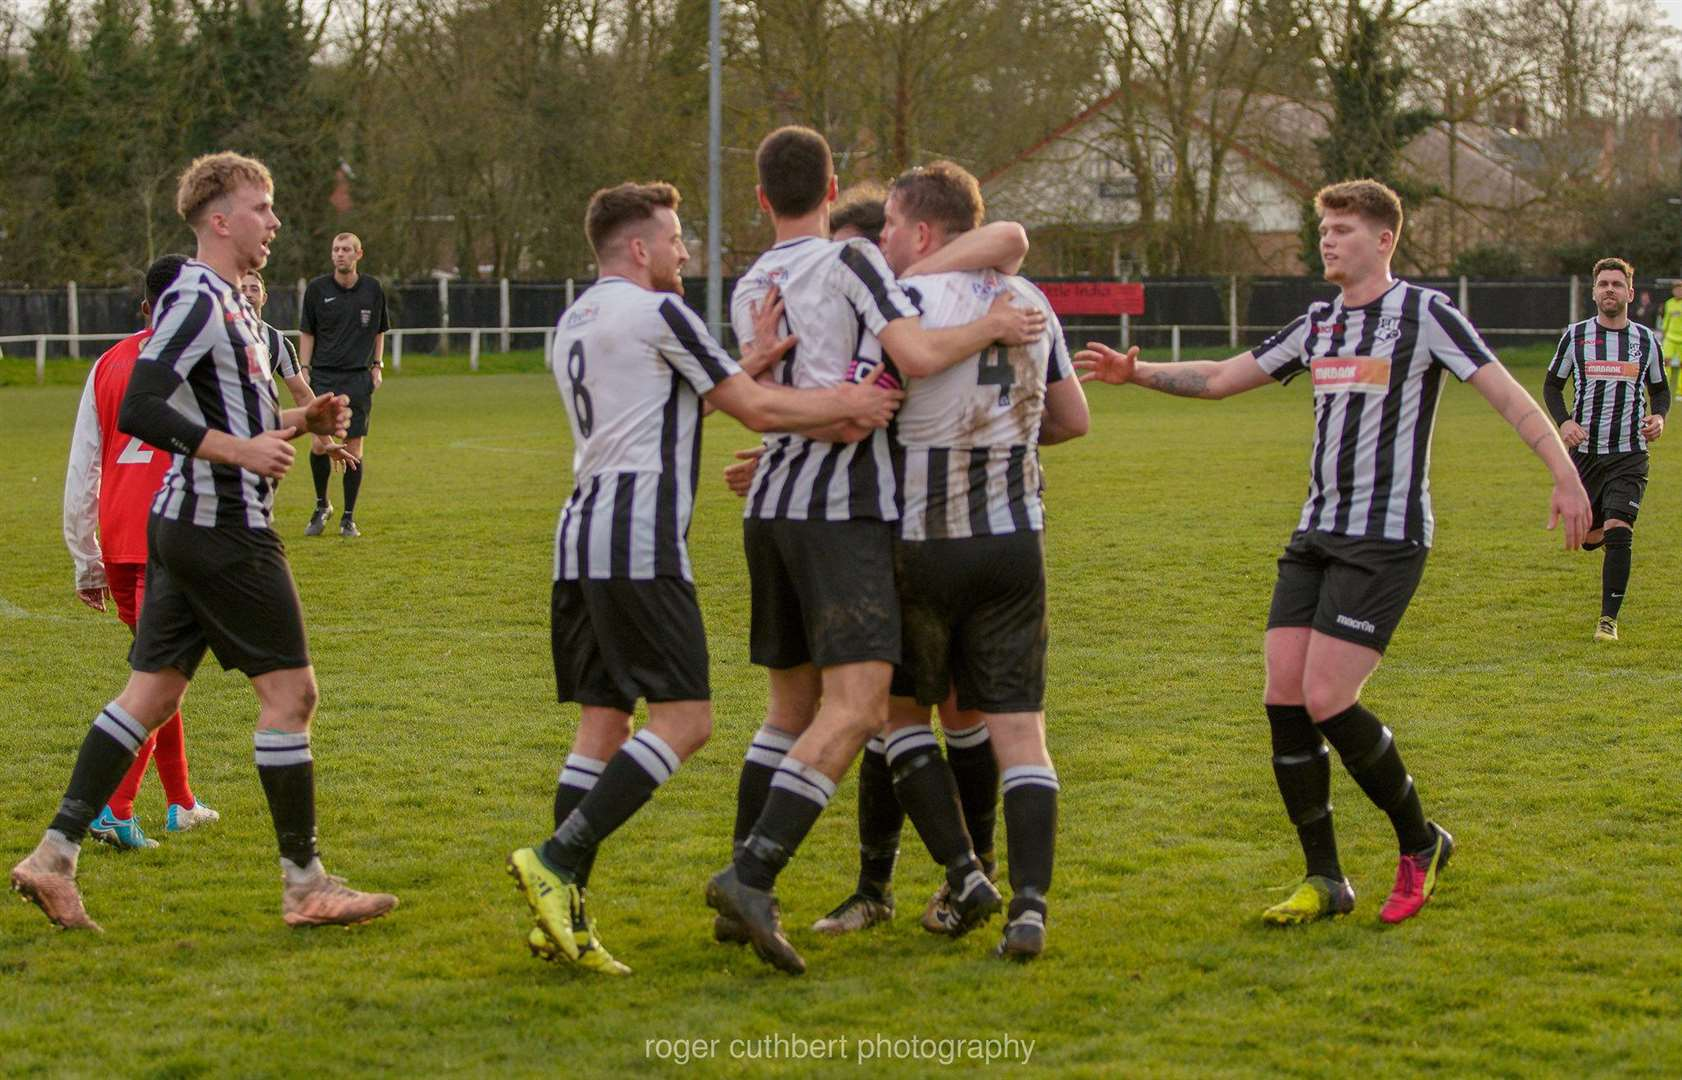 Halstead Town players celebrate Gary Burdett's first Humbugs goal to put them 2-0 up against Lopes Tavares Picture: Roger Cuthbert (7542653)